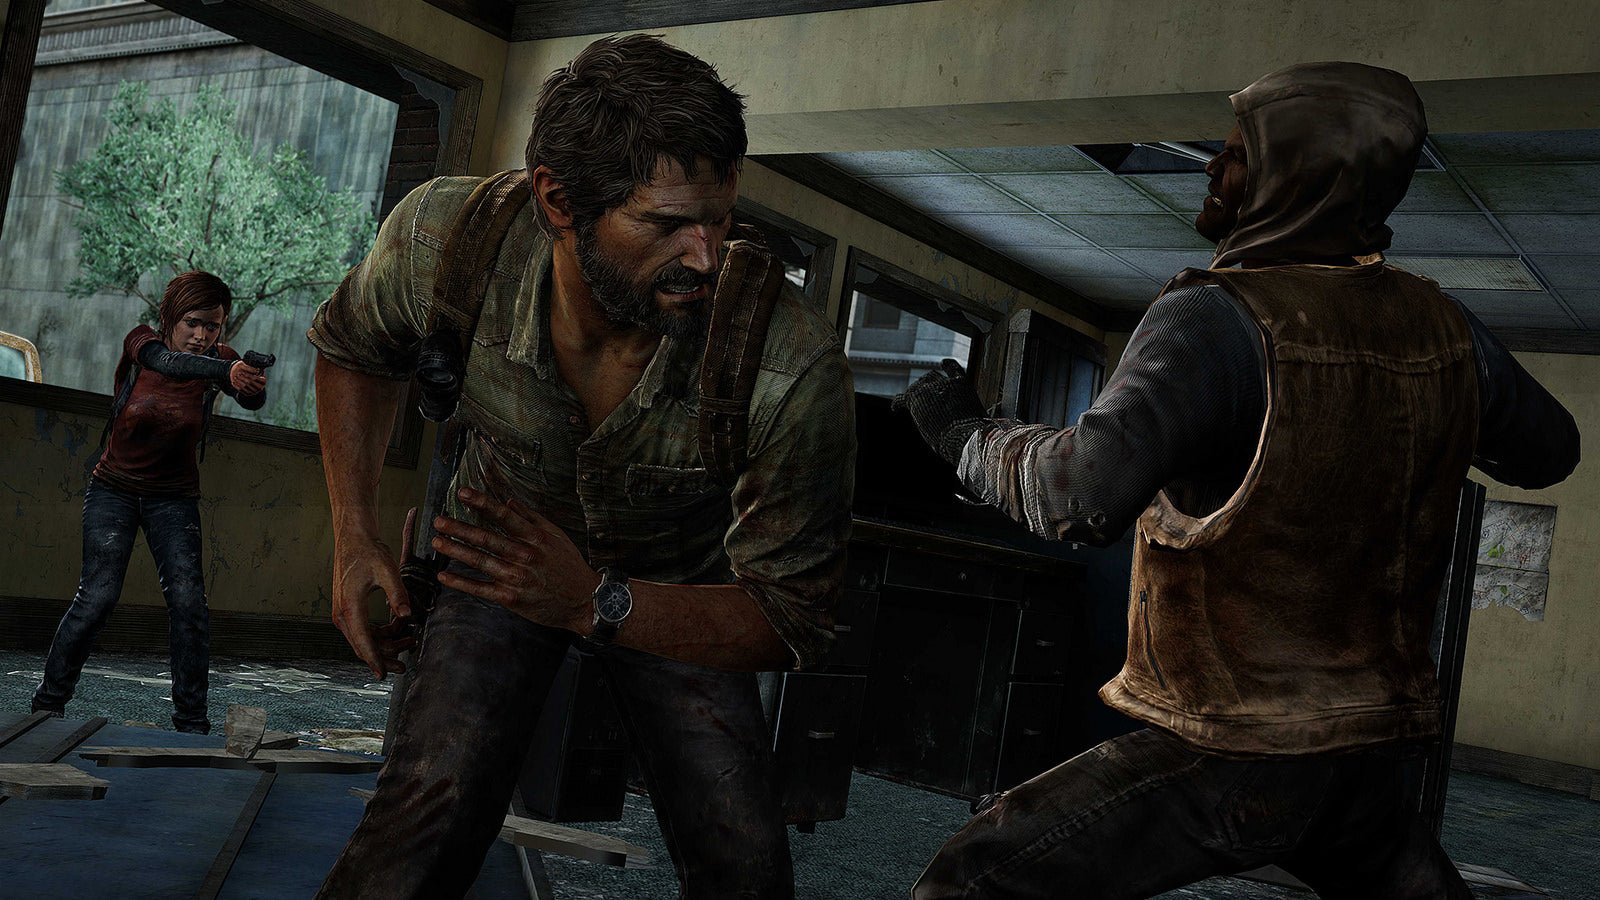 THE LAST OF US REMASTERED SHOOTING